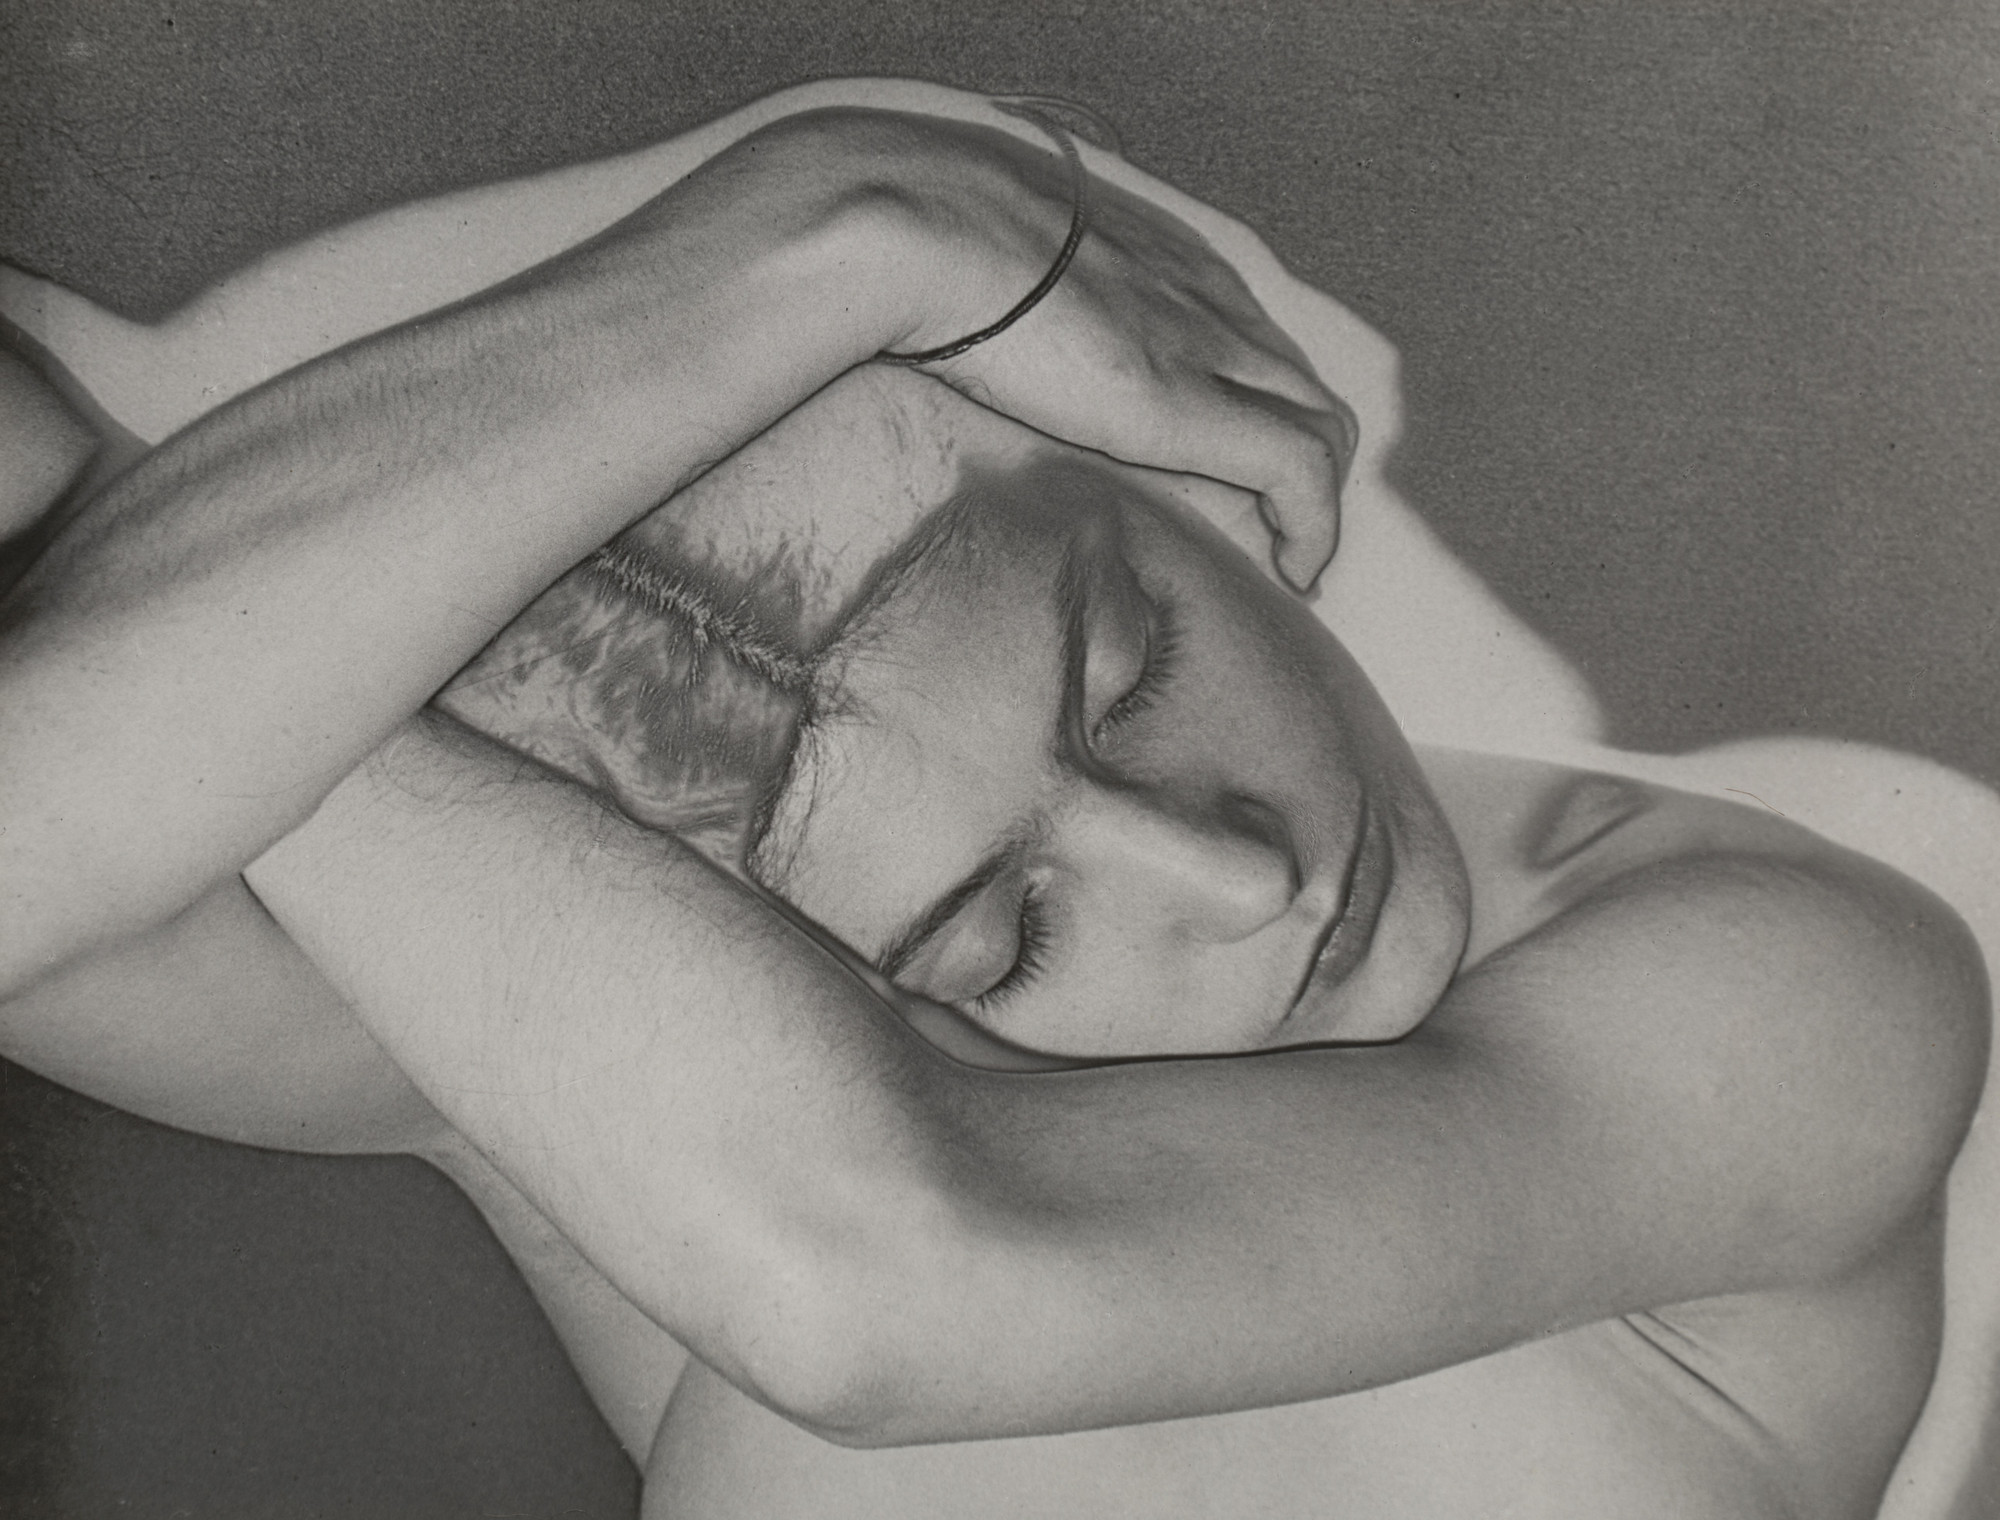 Man Ray (Emmanuel Radnitzky). Sleeping Woman. 1929